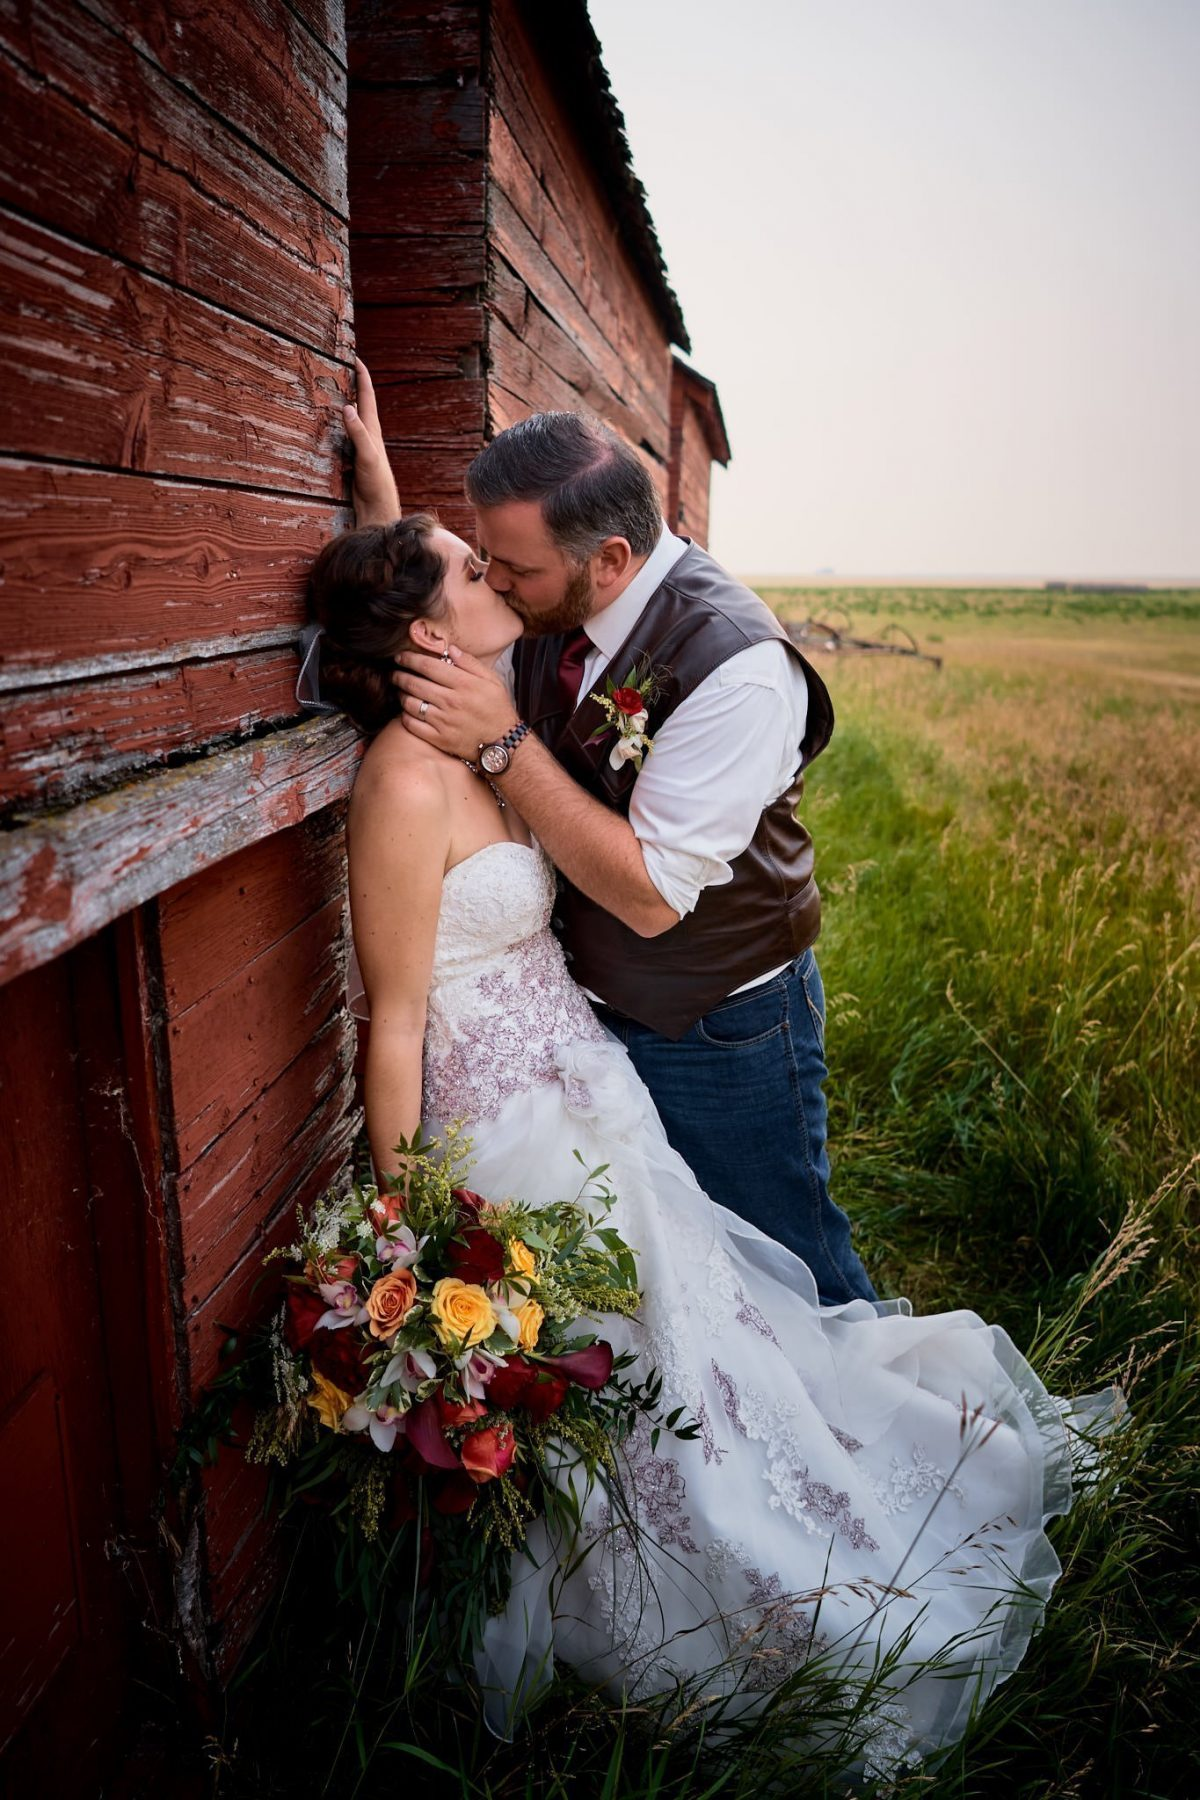 Wedding photography country rustic alberta